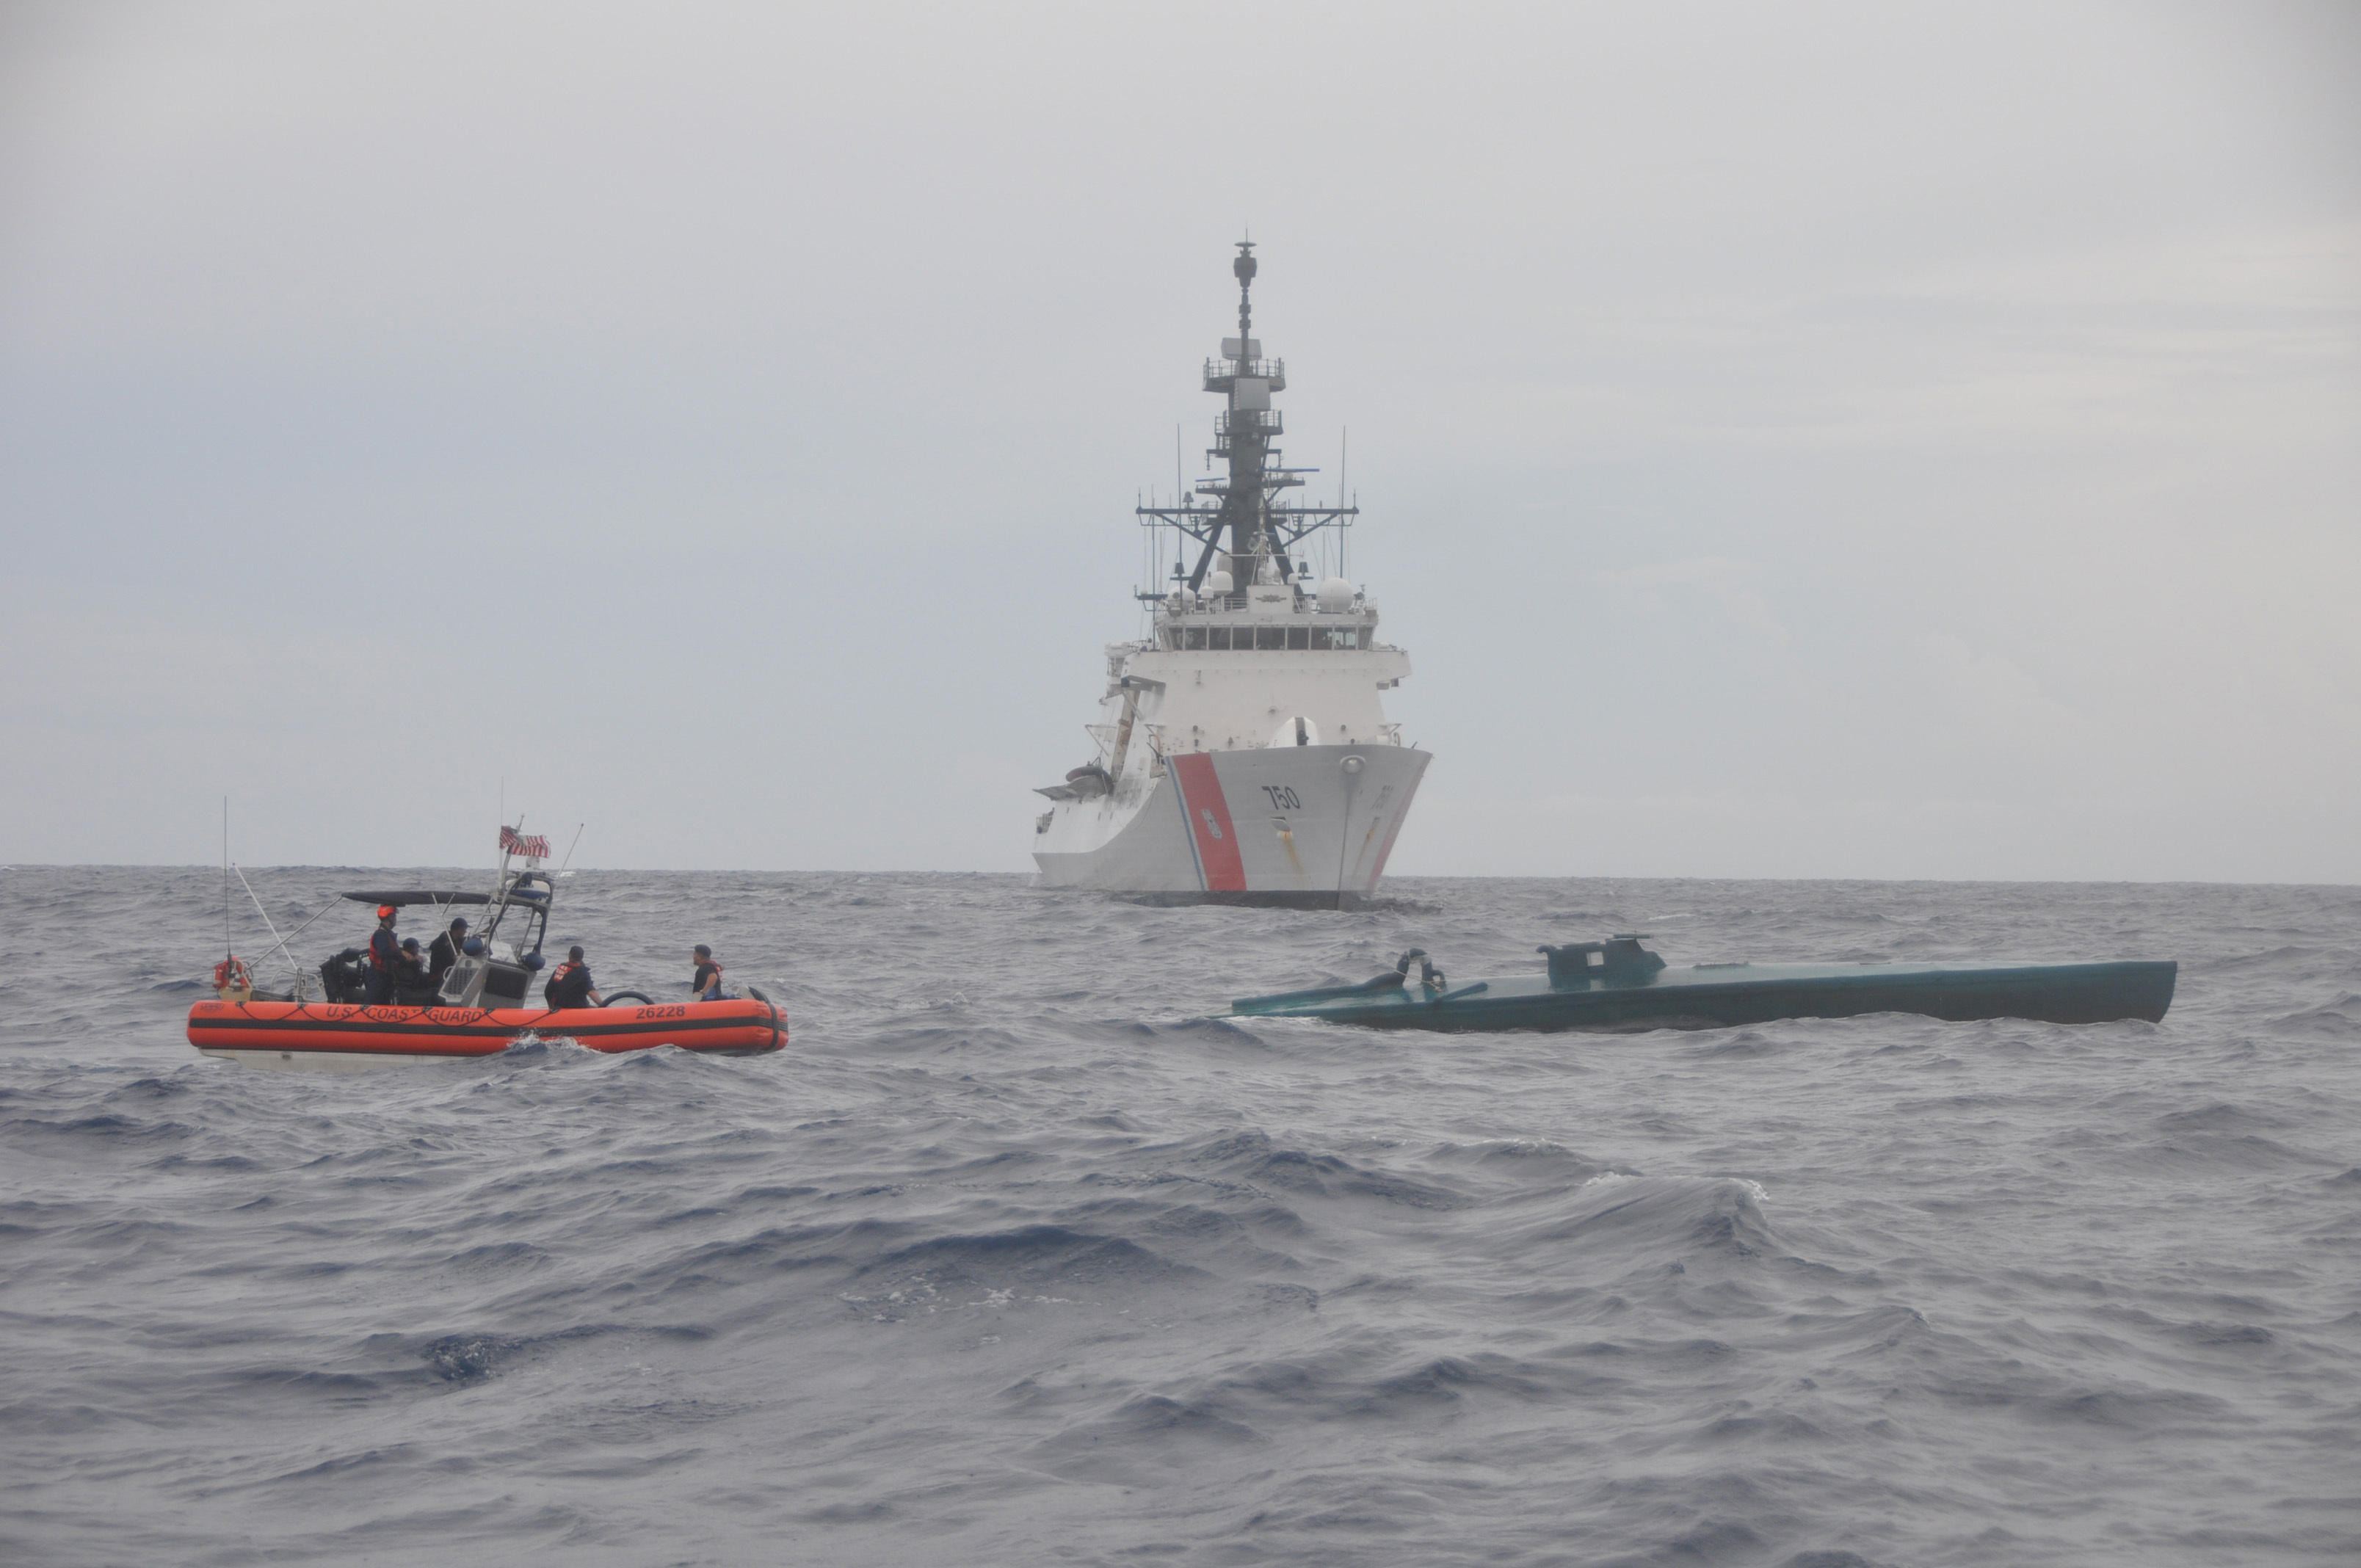 A Coast Guard Cutter Bertholf boarding team conducts an interdiction of a self-propelled semi-submersible vessel suspected of smuggling 7.5 tons of cocaine in the Eastern Pacific Ocean, Aug. 31, 2015.